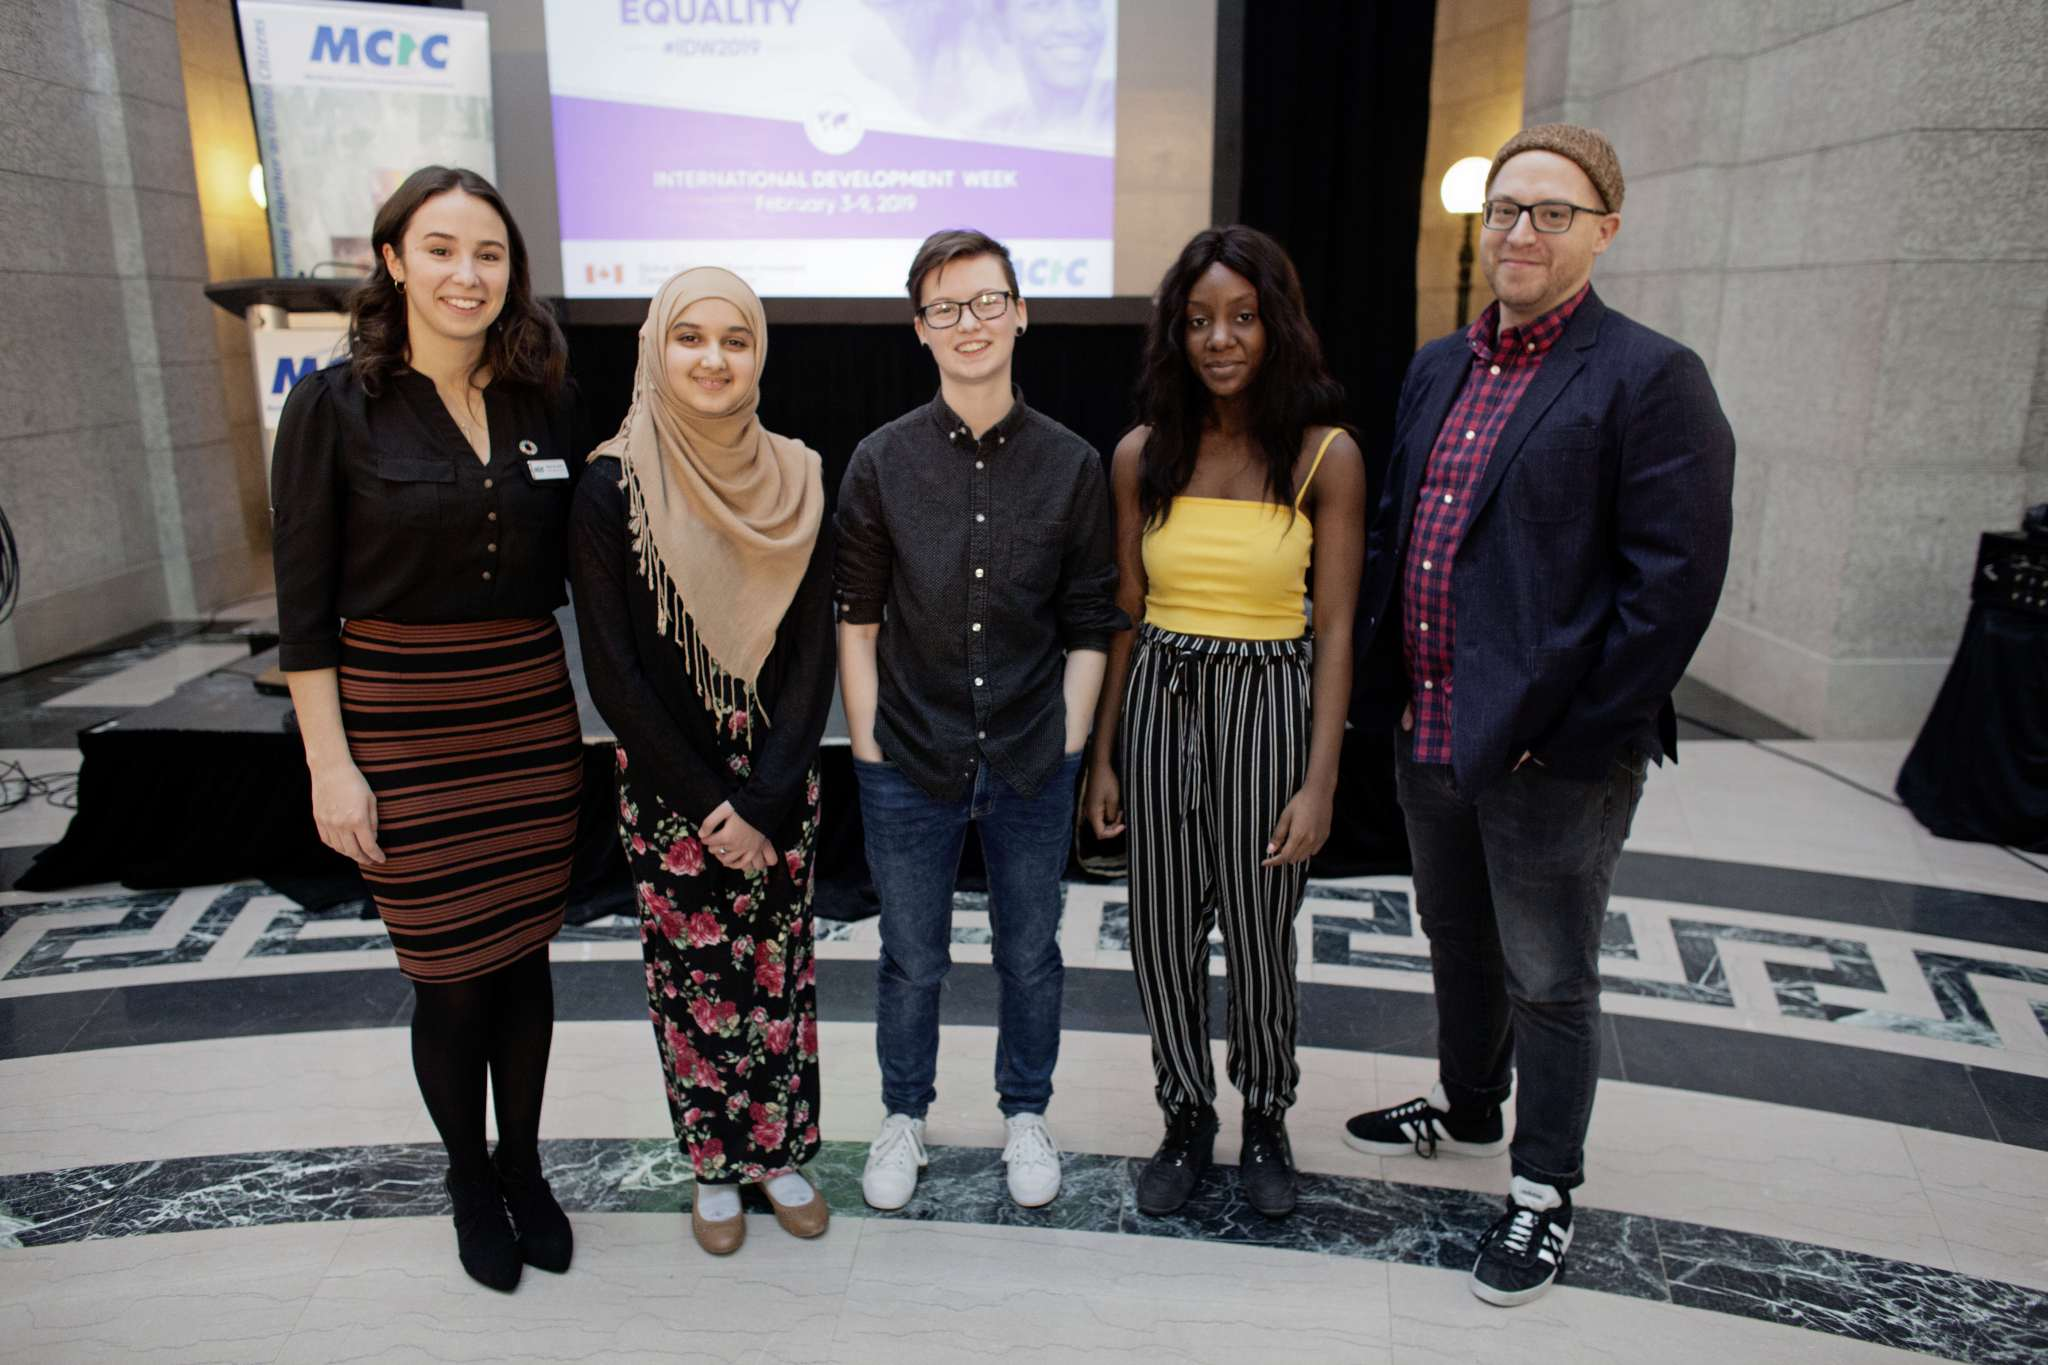 From left, Keana Rellinger, public engagement specialist with the Manitoba Council for International Cooperation; students Urooba Ahmed, Jay Webster, Sophia Abolore; and spoken word poetry project facilitator Steve Locke at the launch of International Development Week at the Legislature, where the group premiered their piece What We Teach.